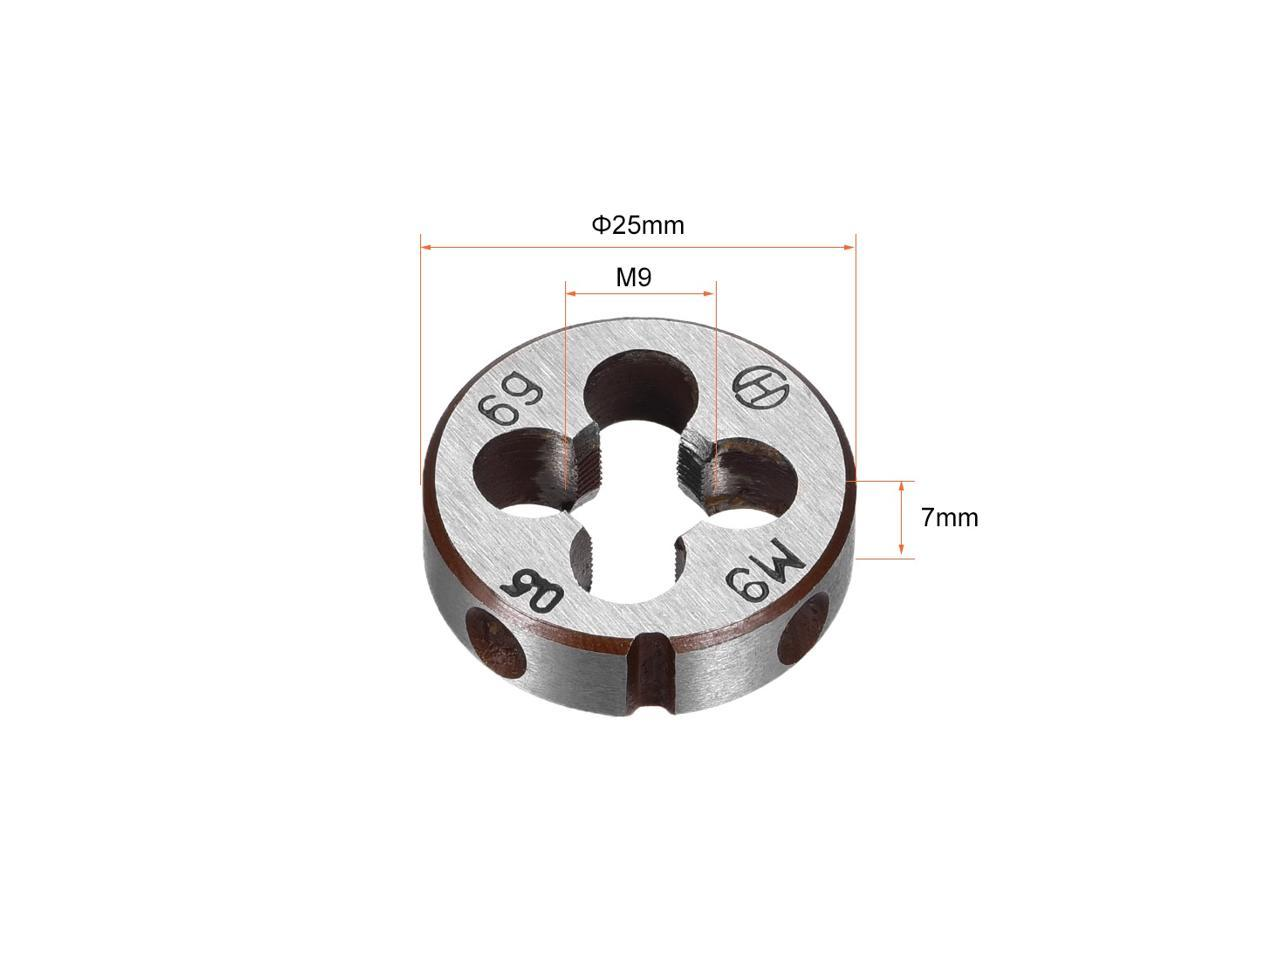 Details about  /M9.5 x 1 mm Pitch Thread Metric Right Hand Die